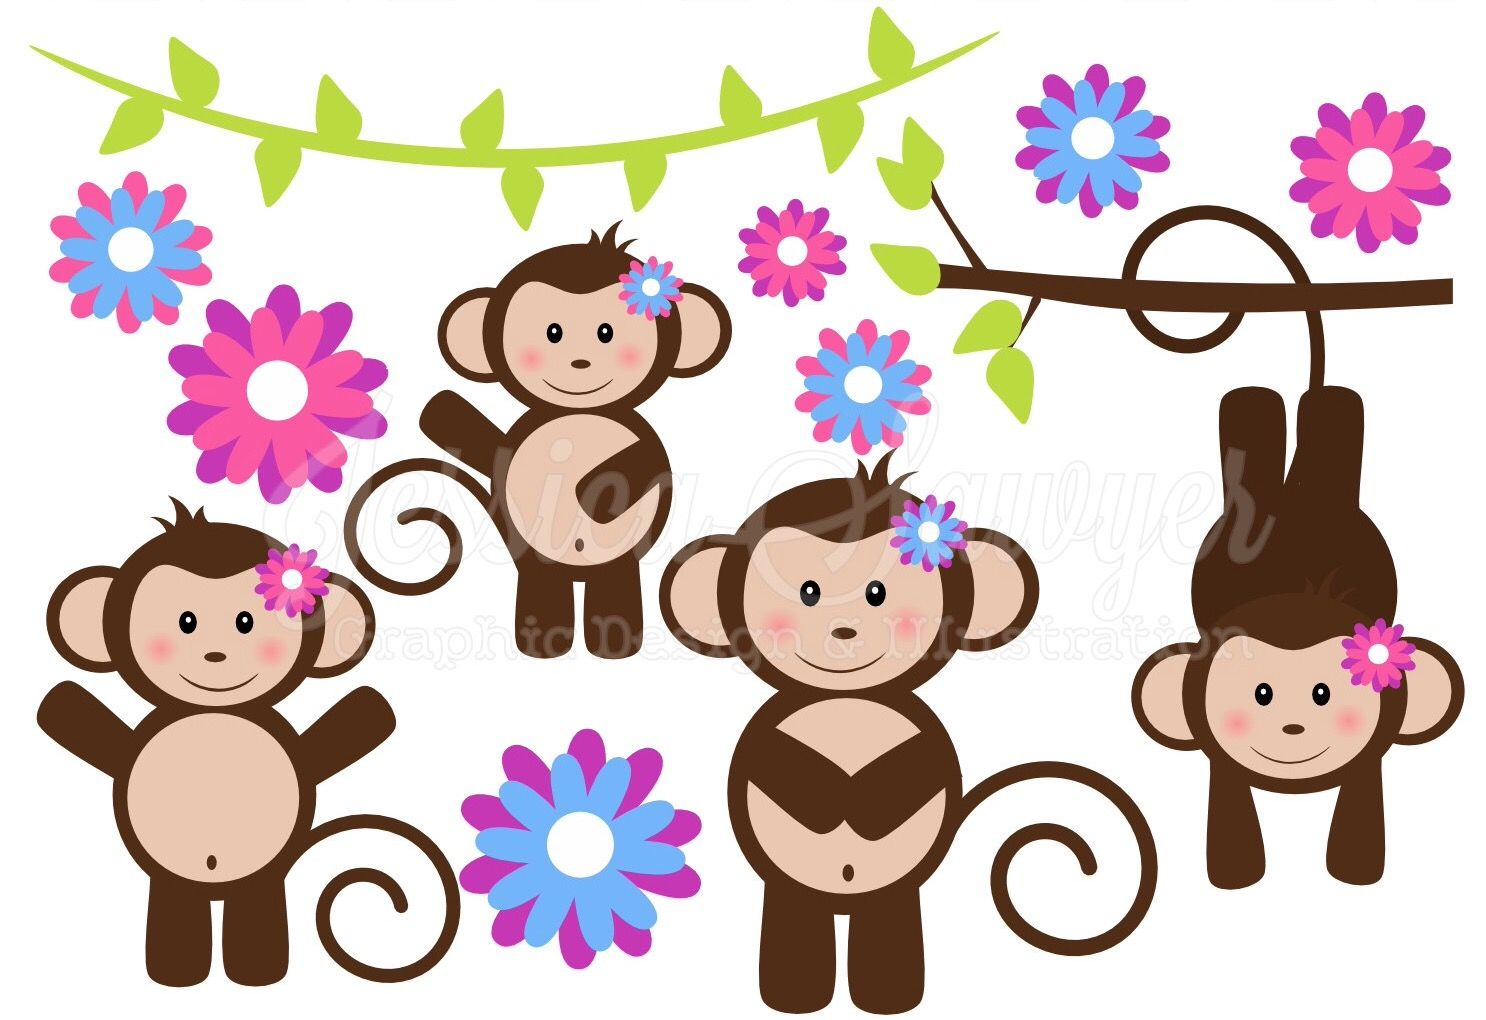 pin by kimberly mecir 2 on monkey business pinterest monkey rh pinterest co uk jungle clip art images jungle clip art for kids